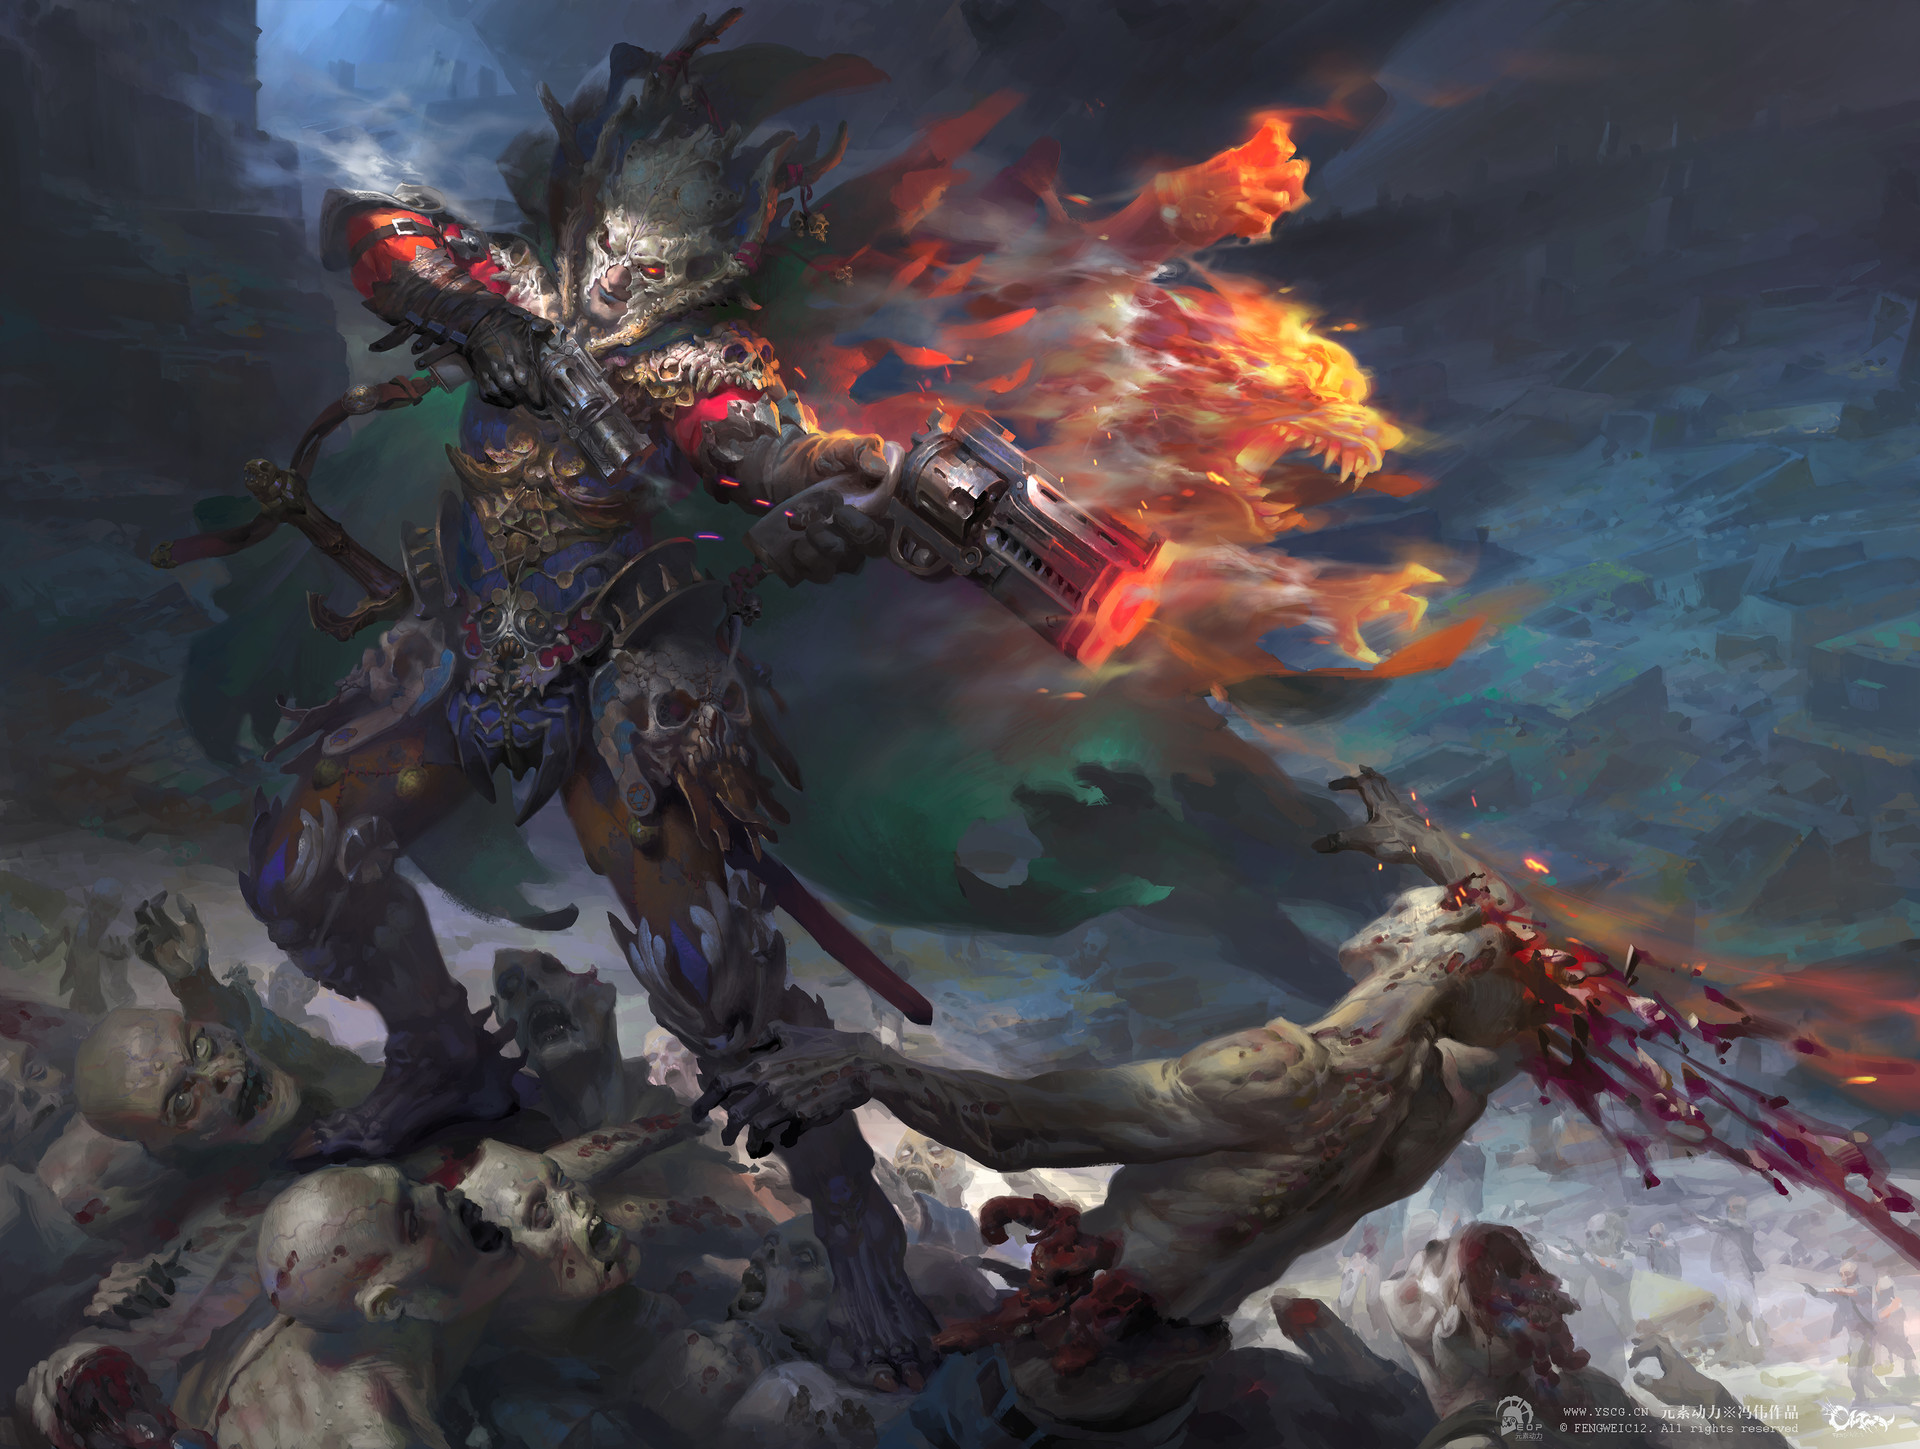 Wei Feng Digital Painting Illustration Zombie fight with gun